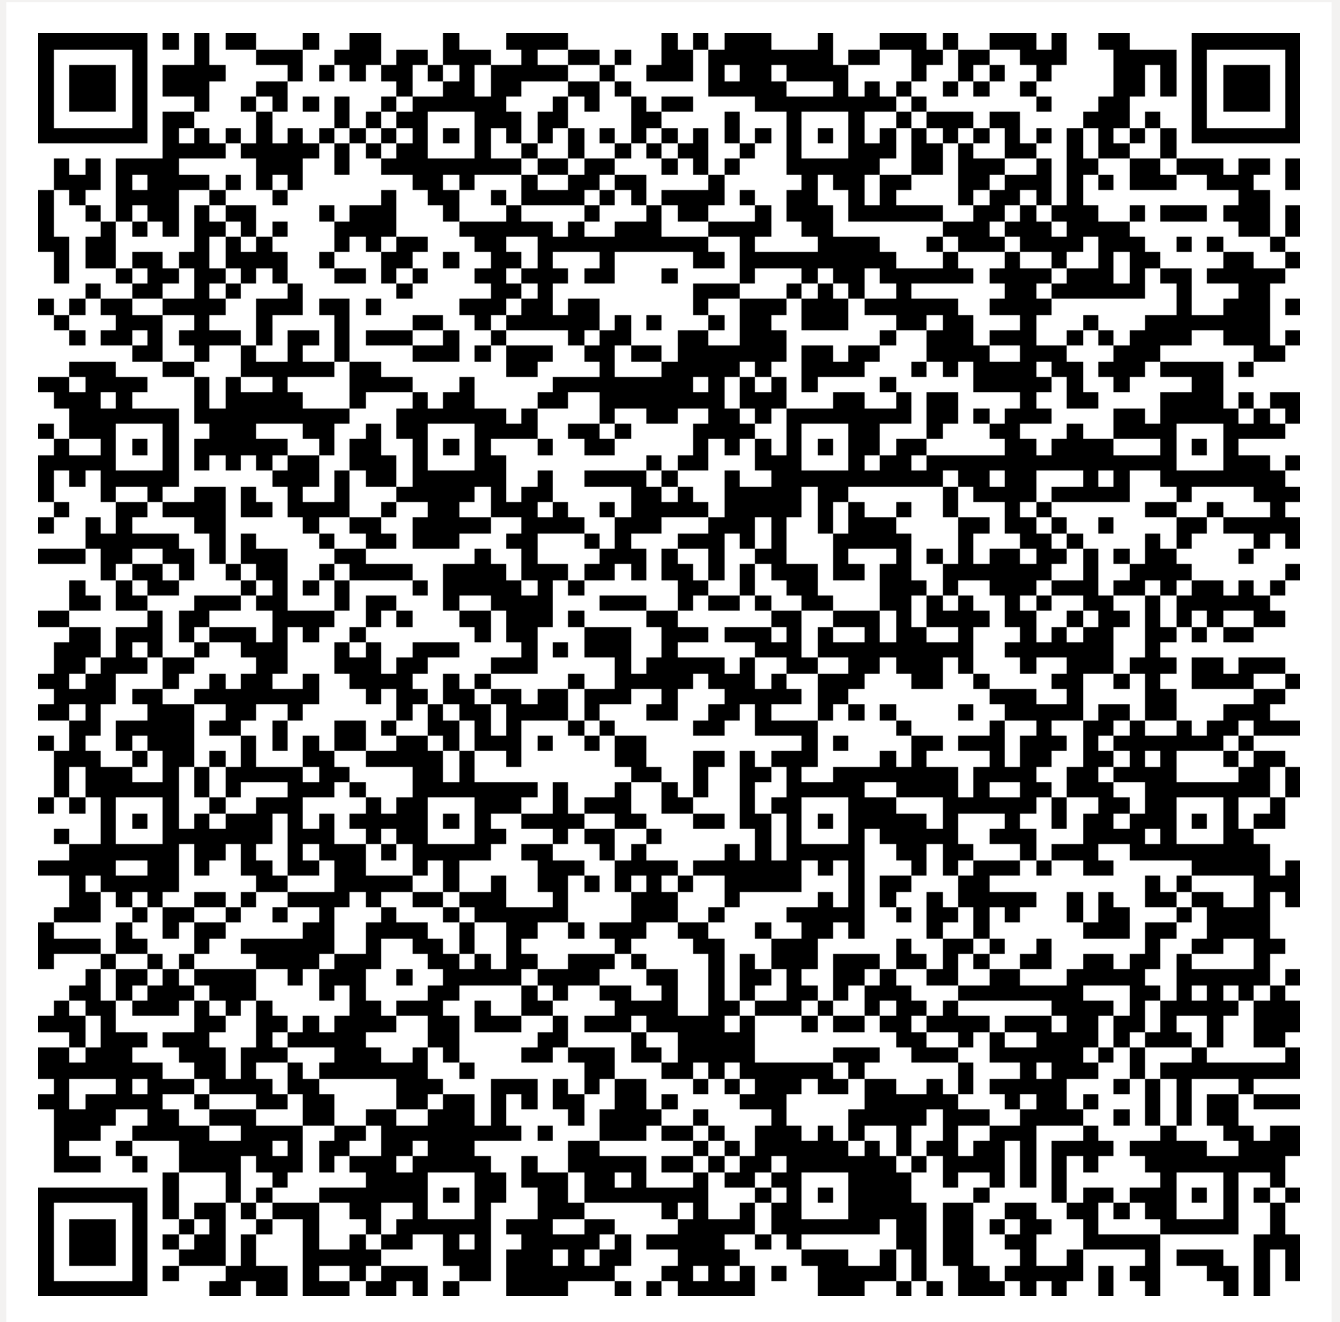 QR Code for Home Games